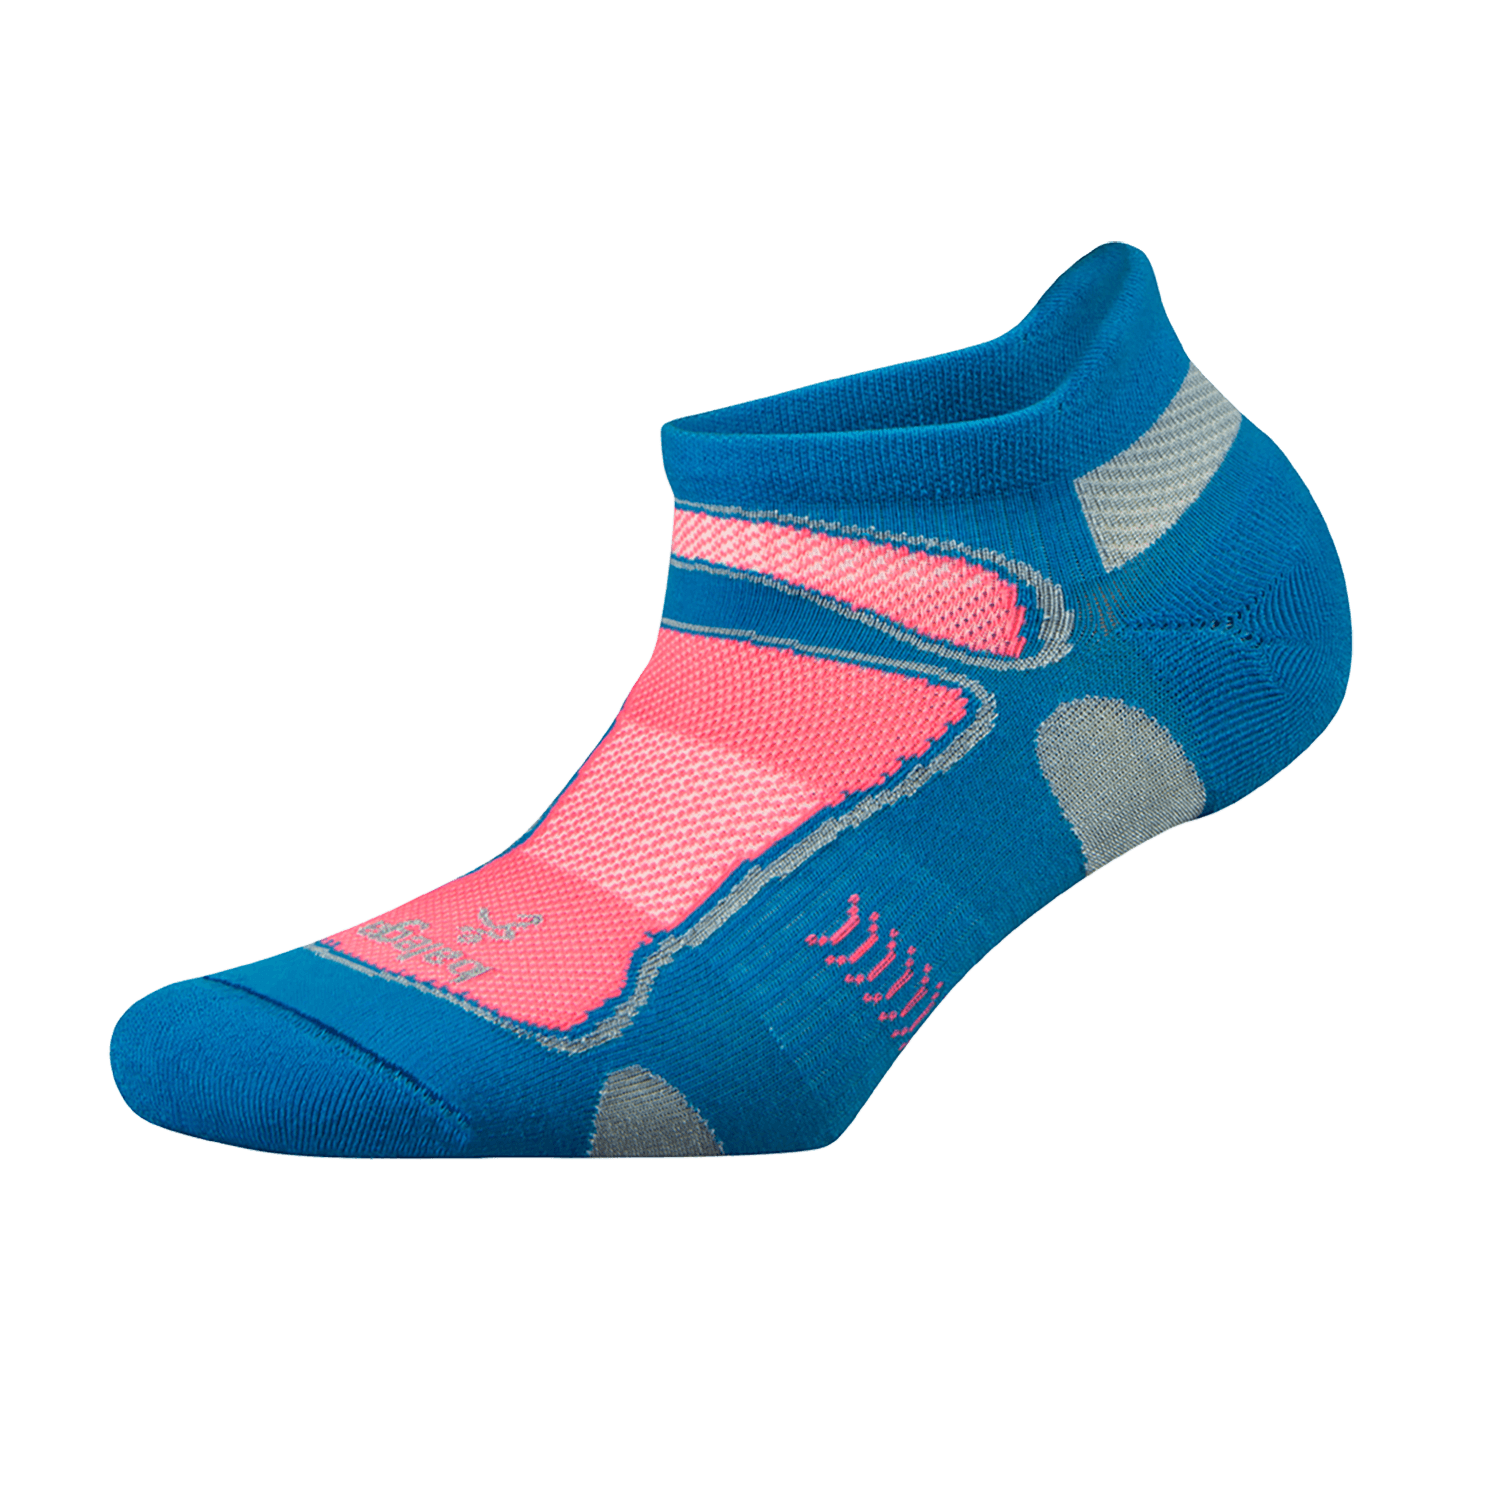 Ultra Light No Show Technical Running Sock - Turquoise/Sherbet Pink